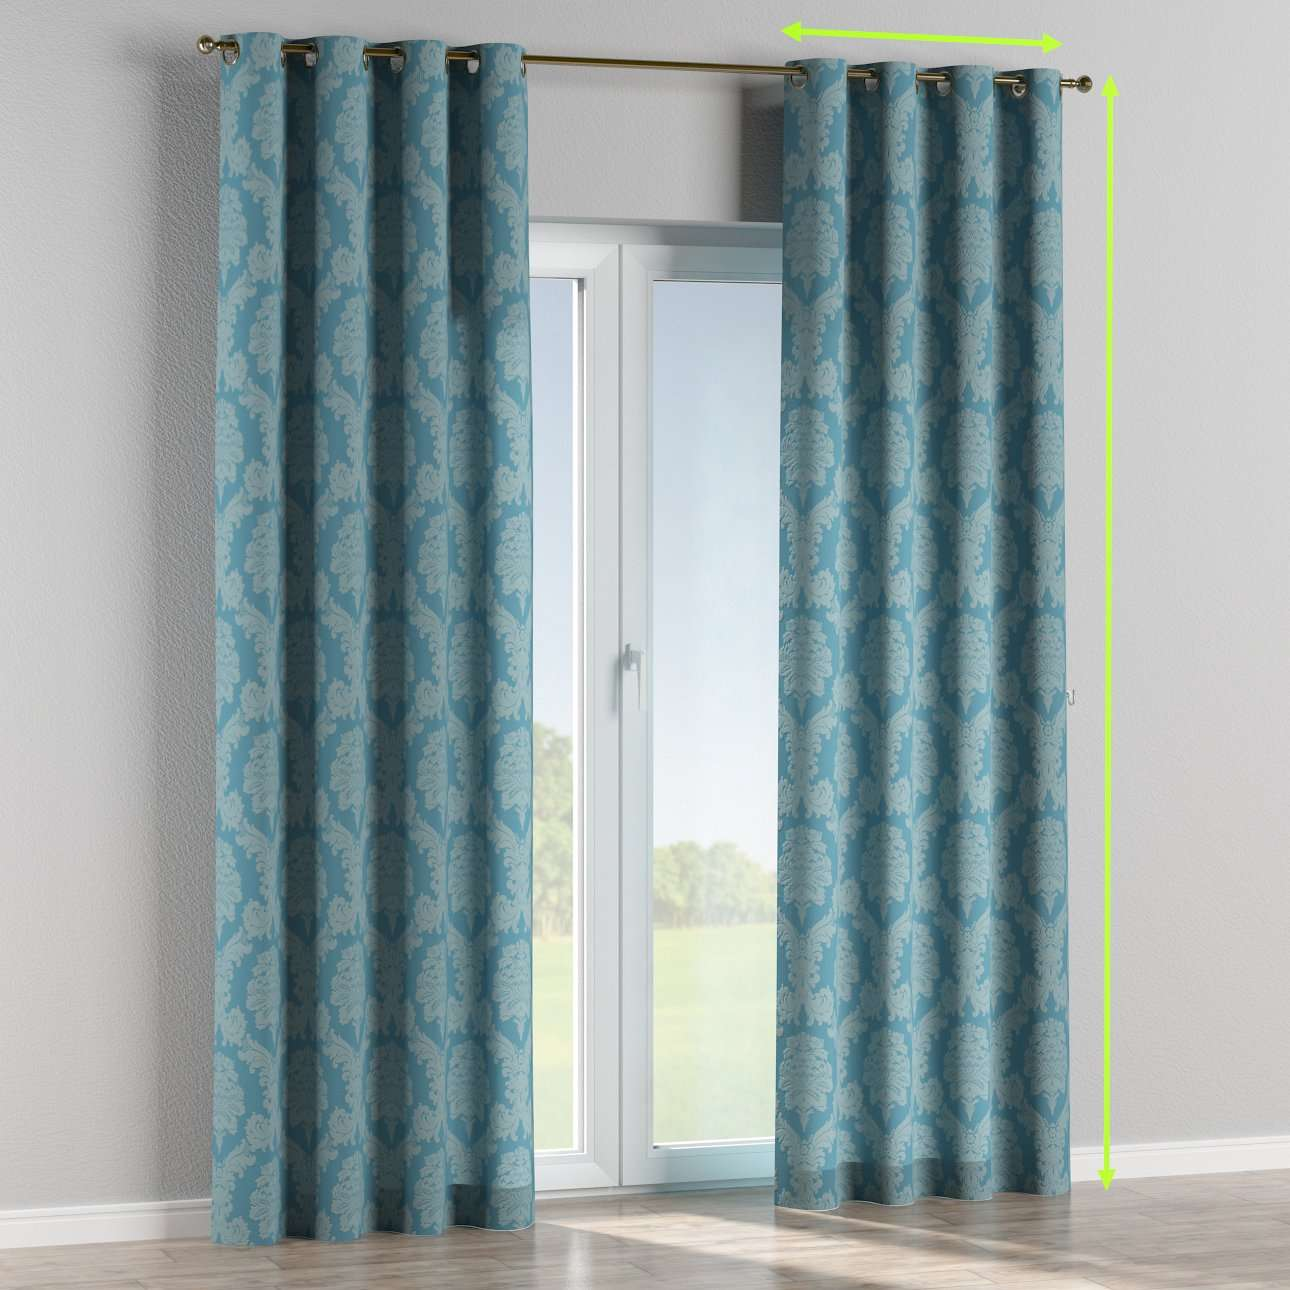 Eyelet lined curtains in collection Damasco, fabric: 613-67